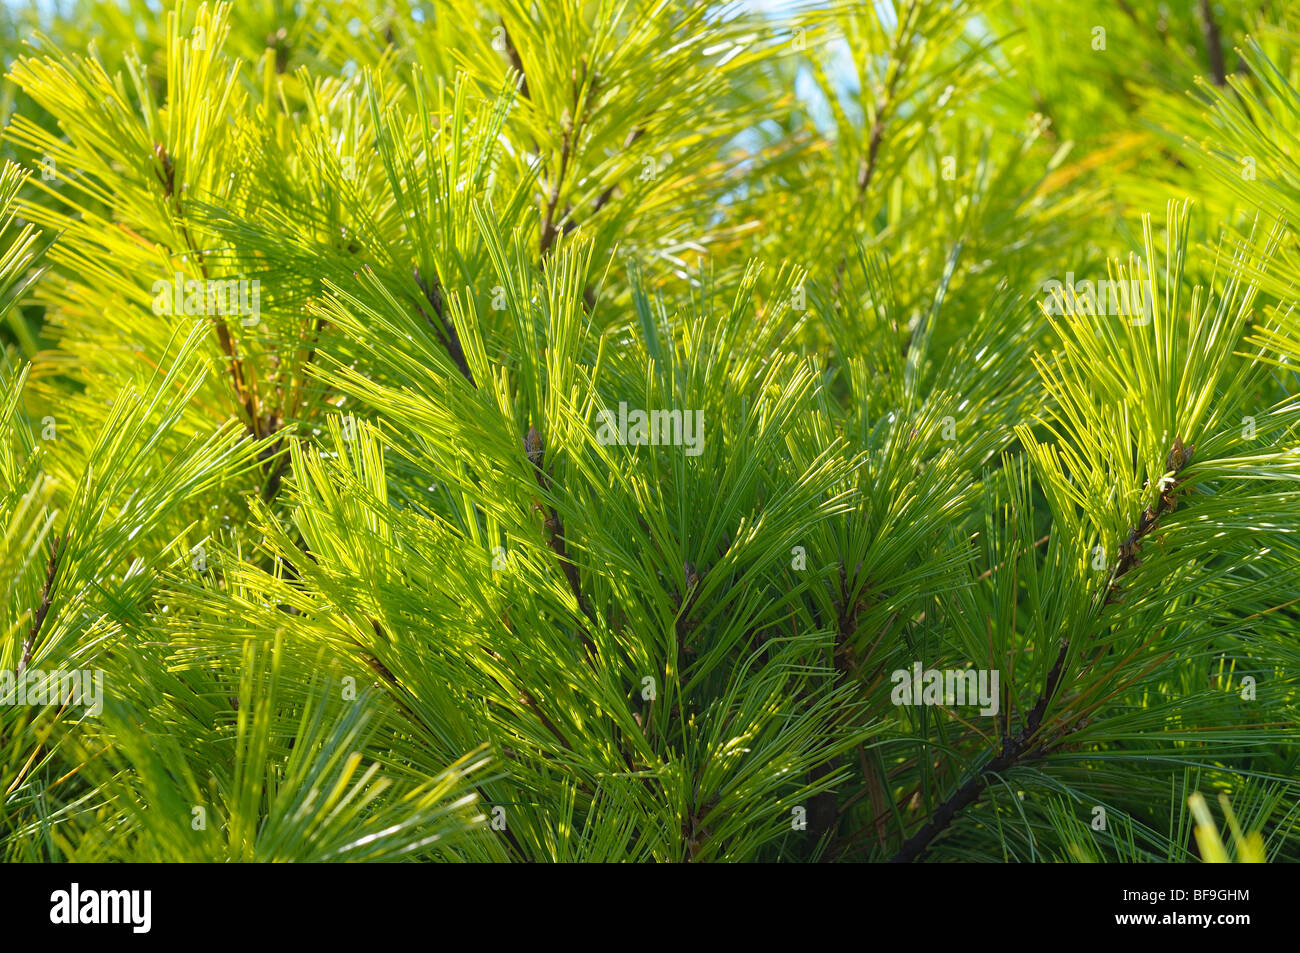 Pine close-up. Stock Photo